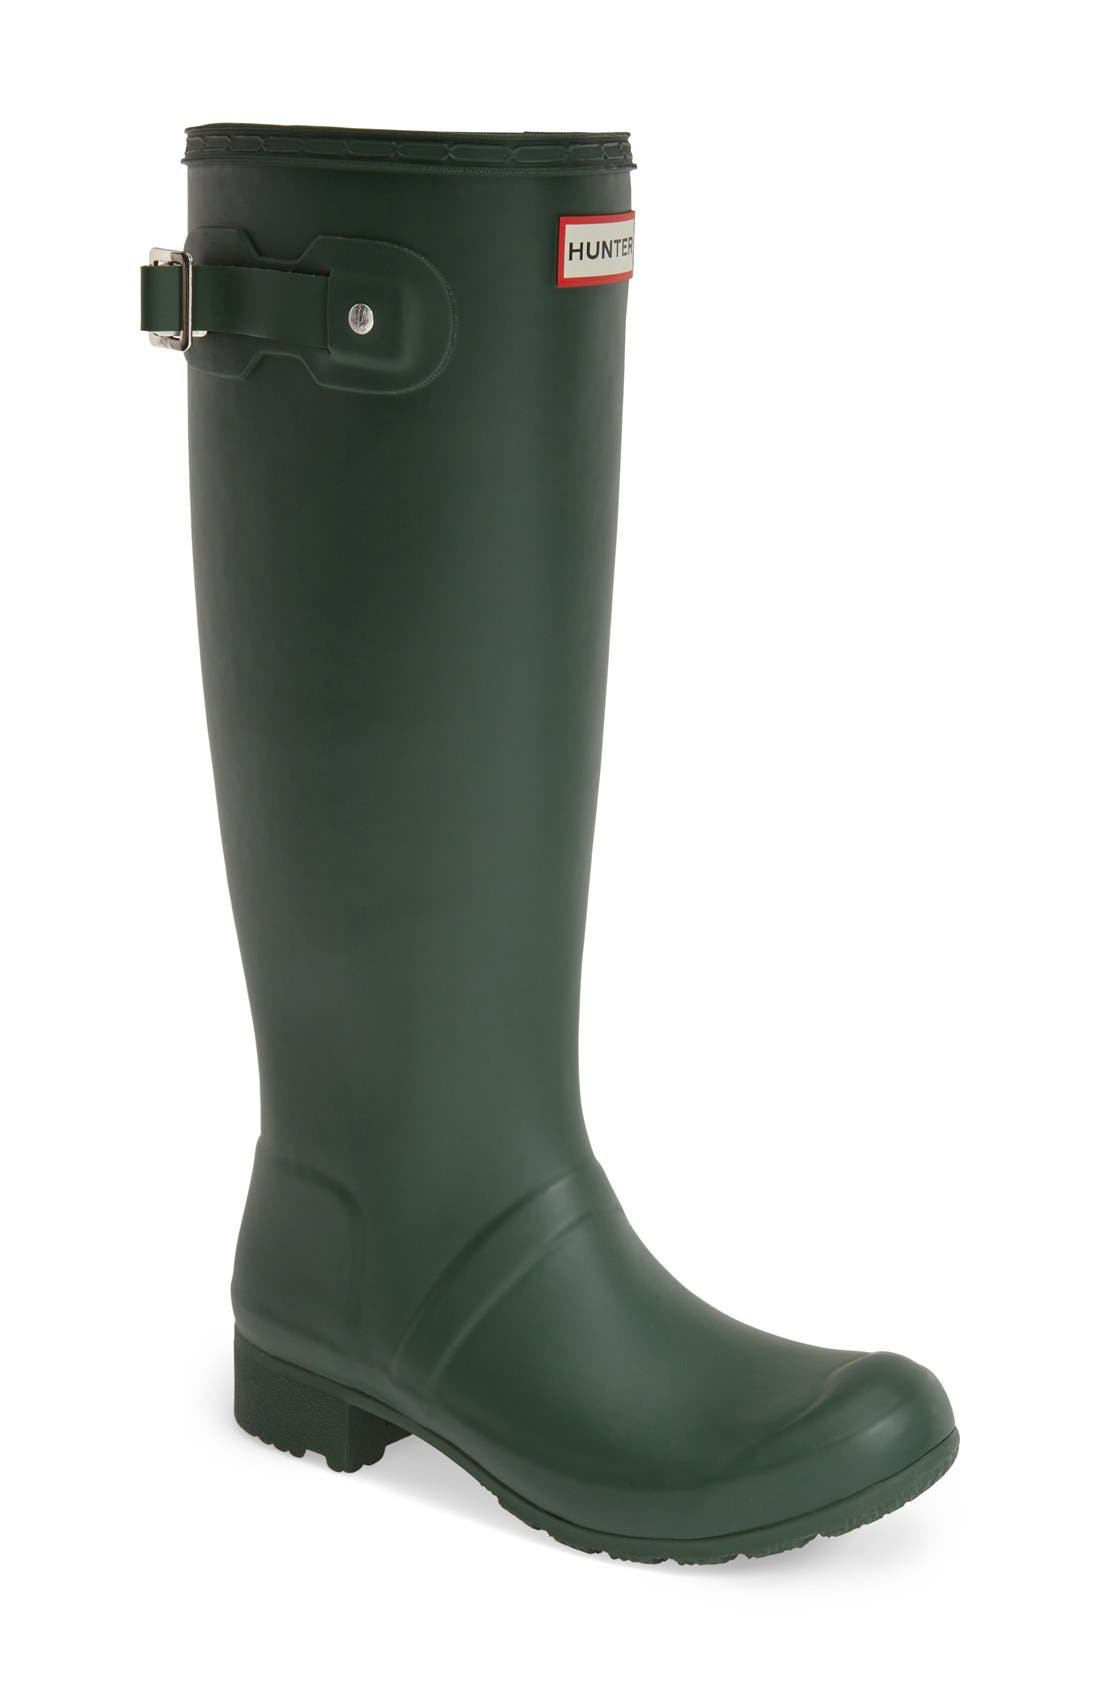 HUNTER 'Tour' Packable Rain Boot